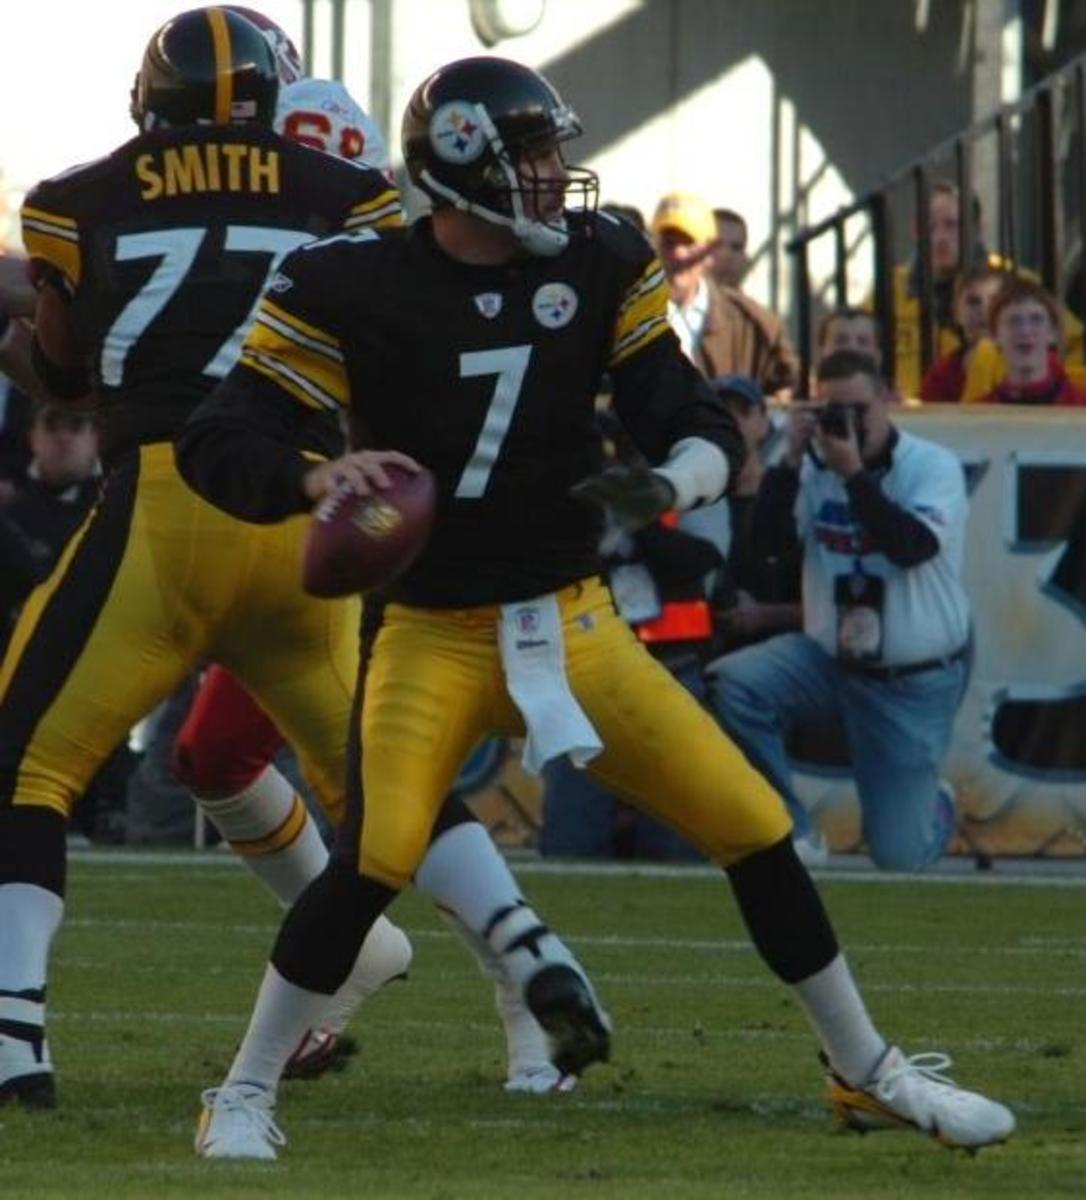 Ben Roethlisberger is one of the all-time greatest Steelers quarterbacks.